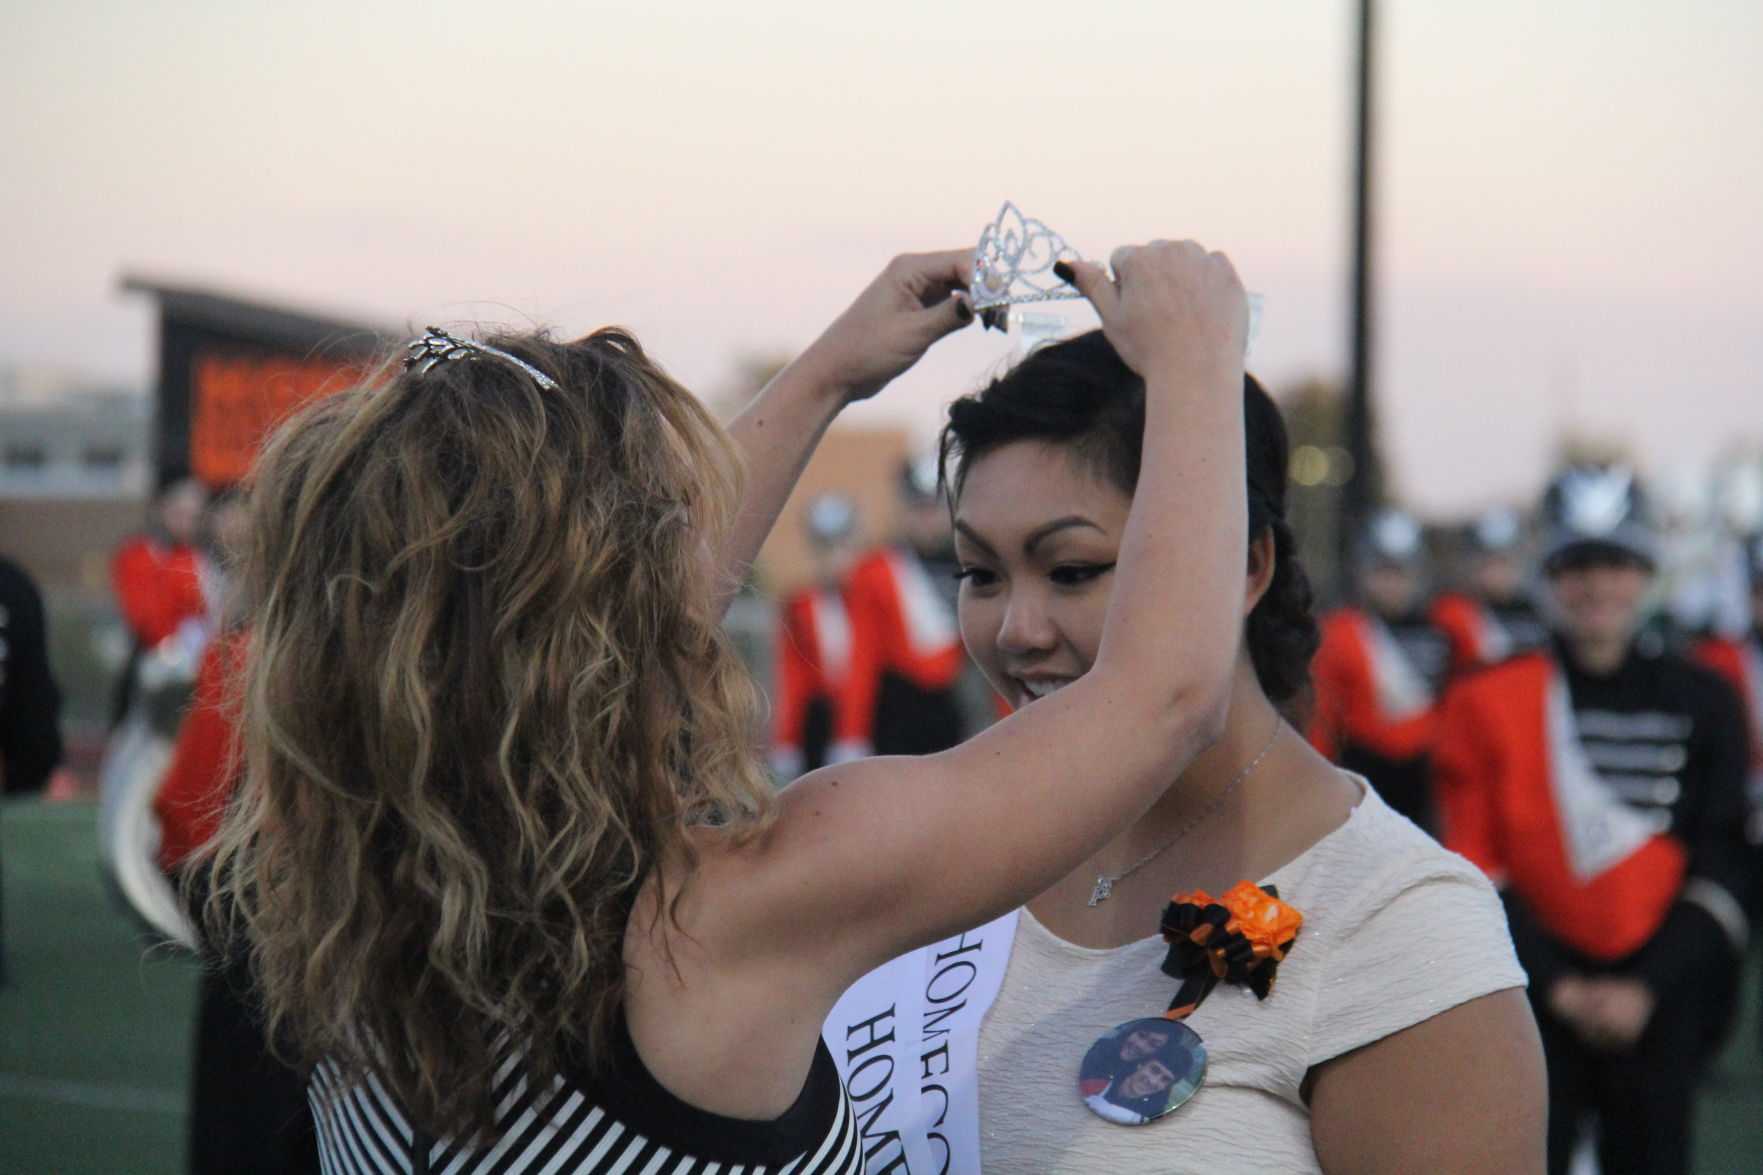 GALLERY: Ashland High School Homecoming 2017